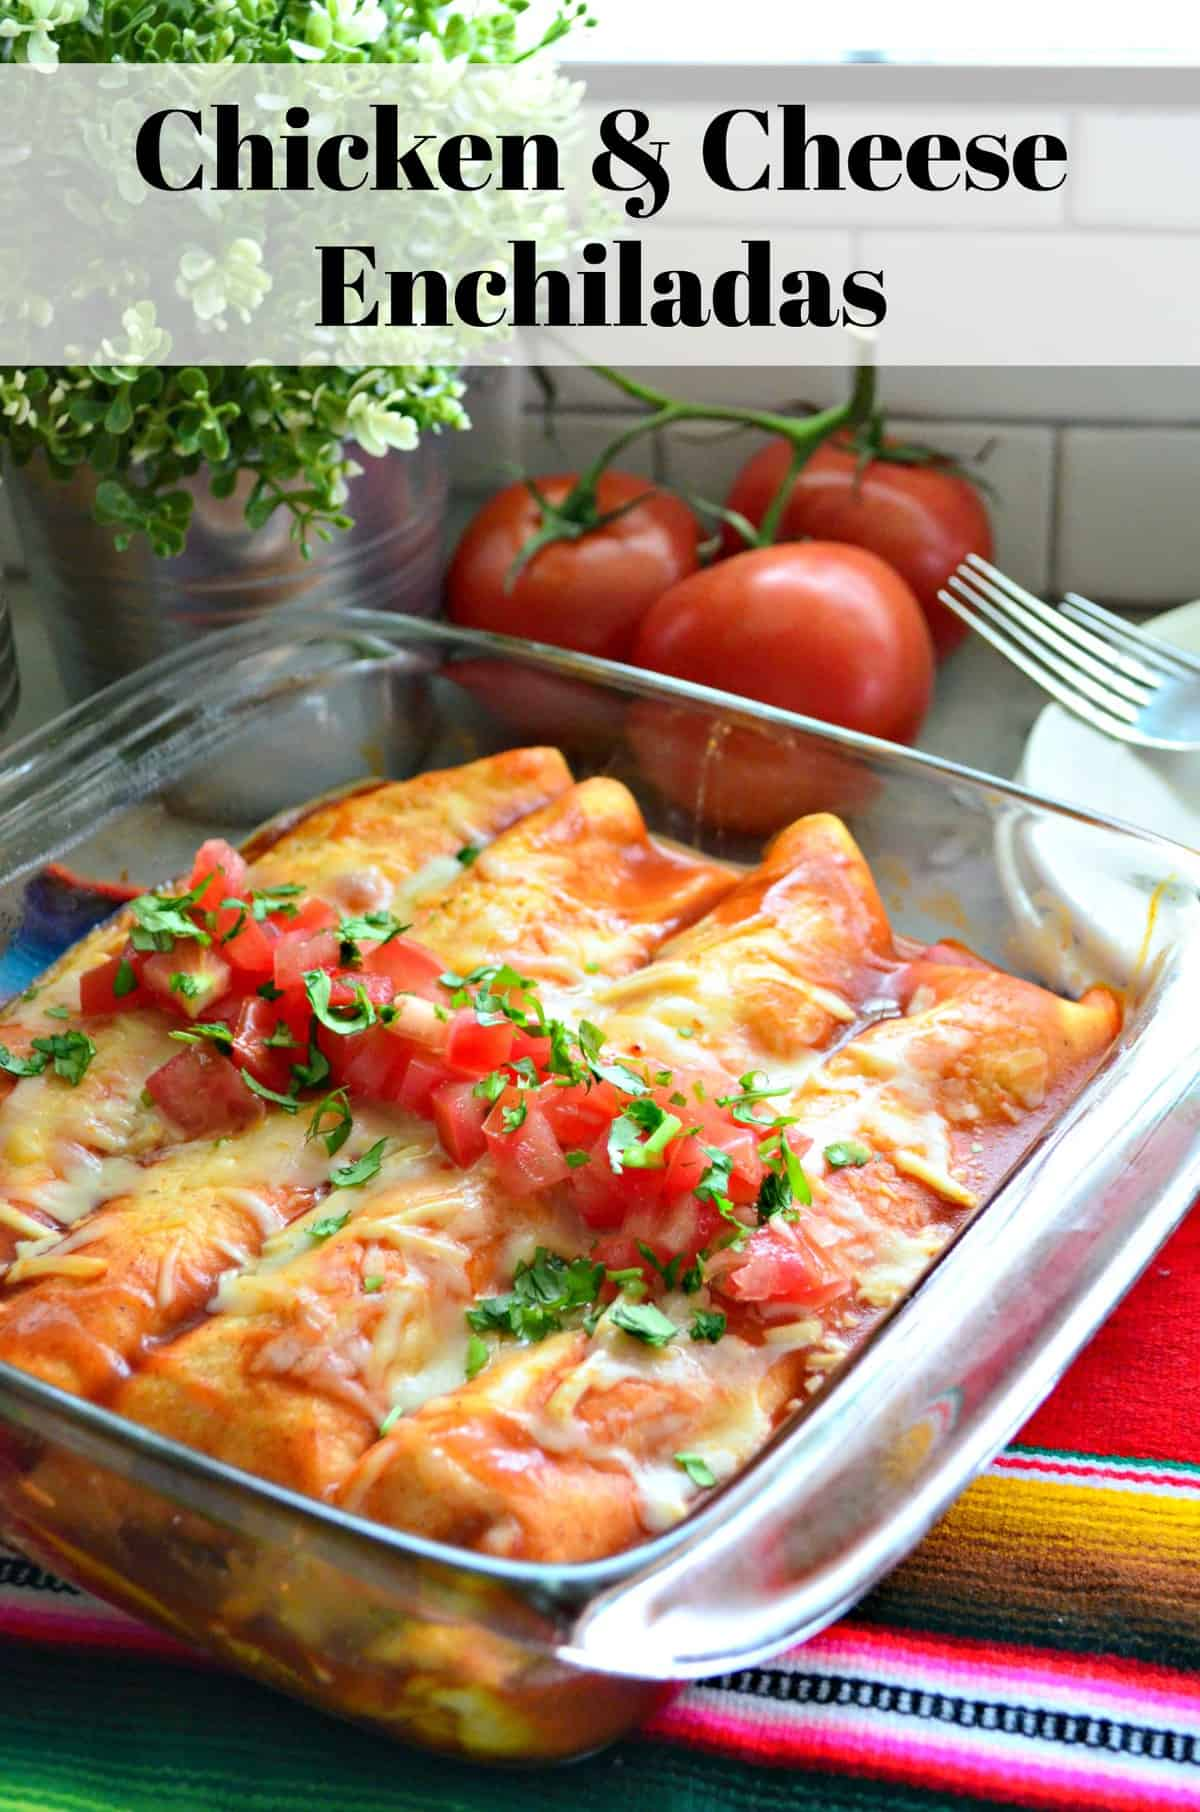 Enchiladas in glass dish topped with melted cheese, diced tomatoes, and cilantro with title text.